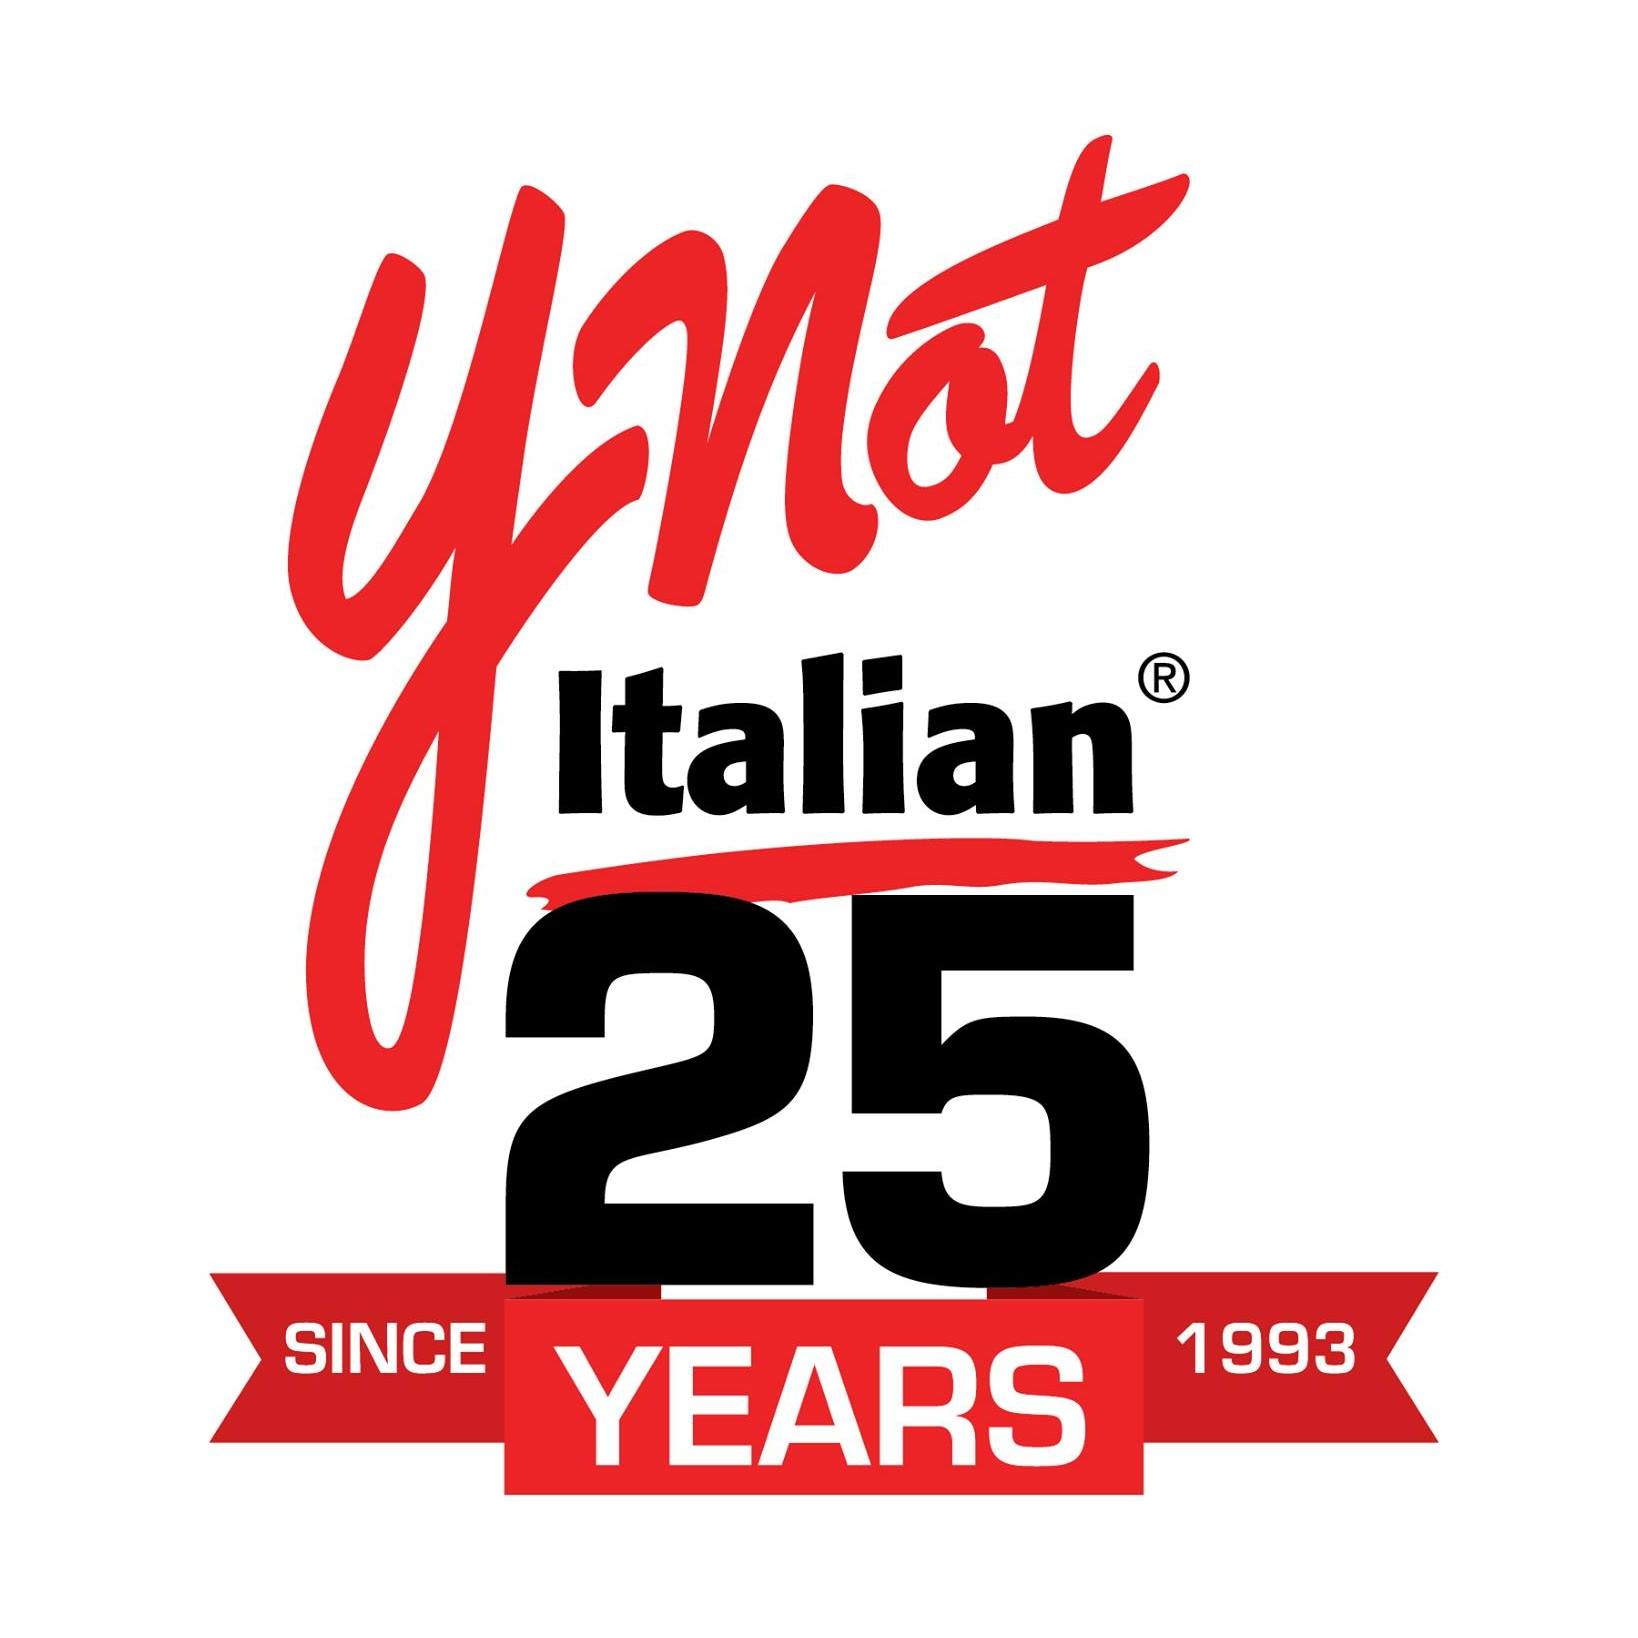 Ynot Italian restaurant located in NORFOLK, VA